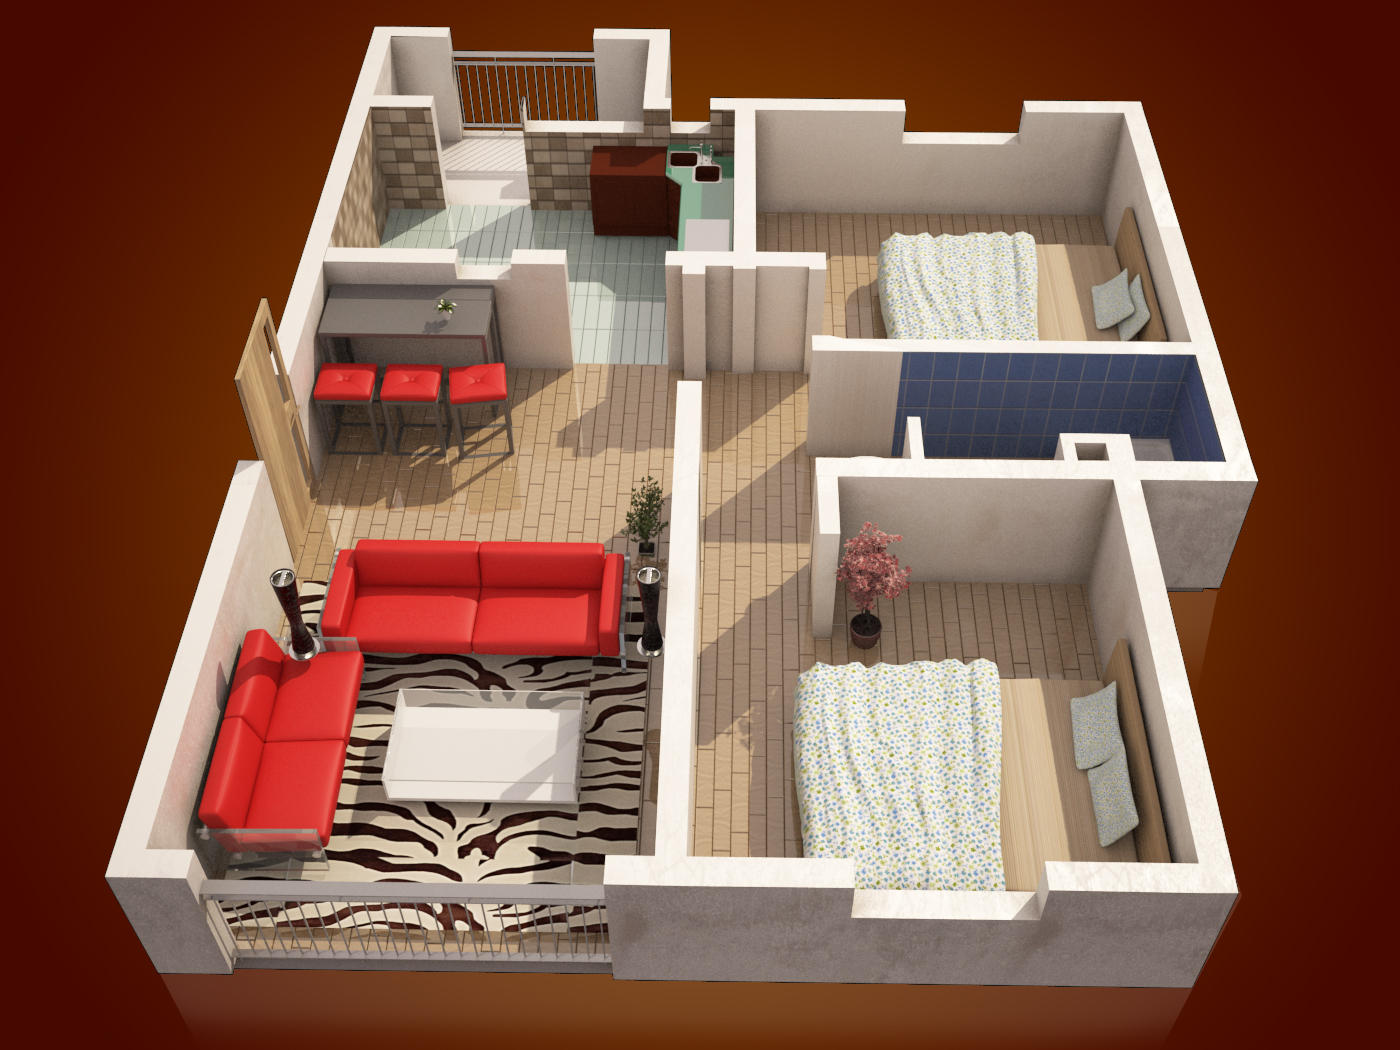 3D Floor Plan Rendering By Gesora On Envato Studio